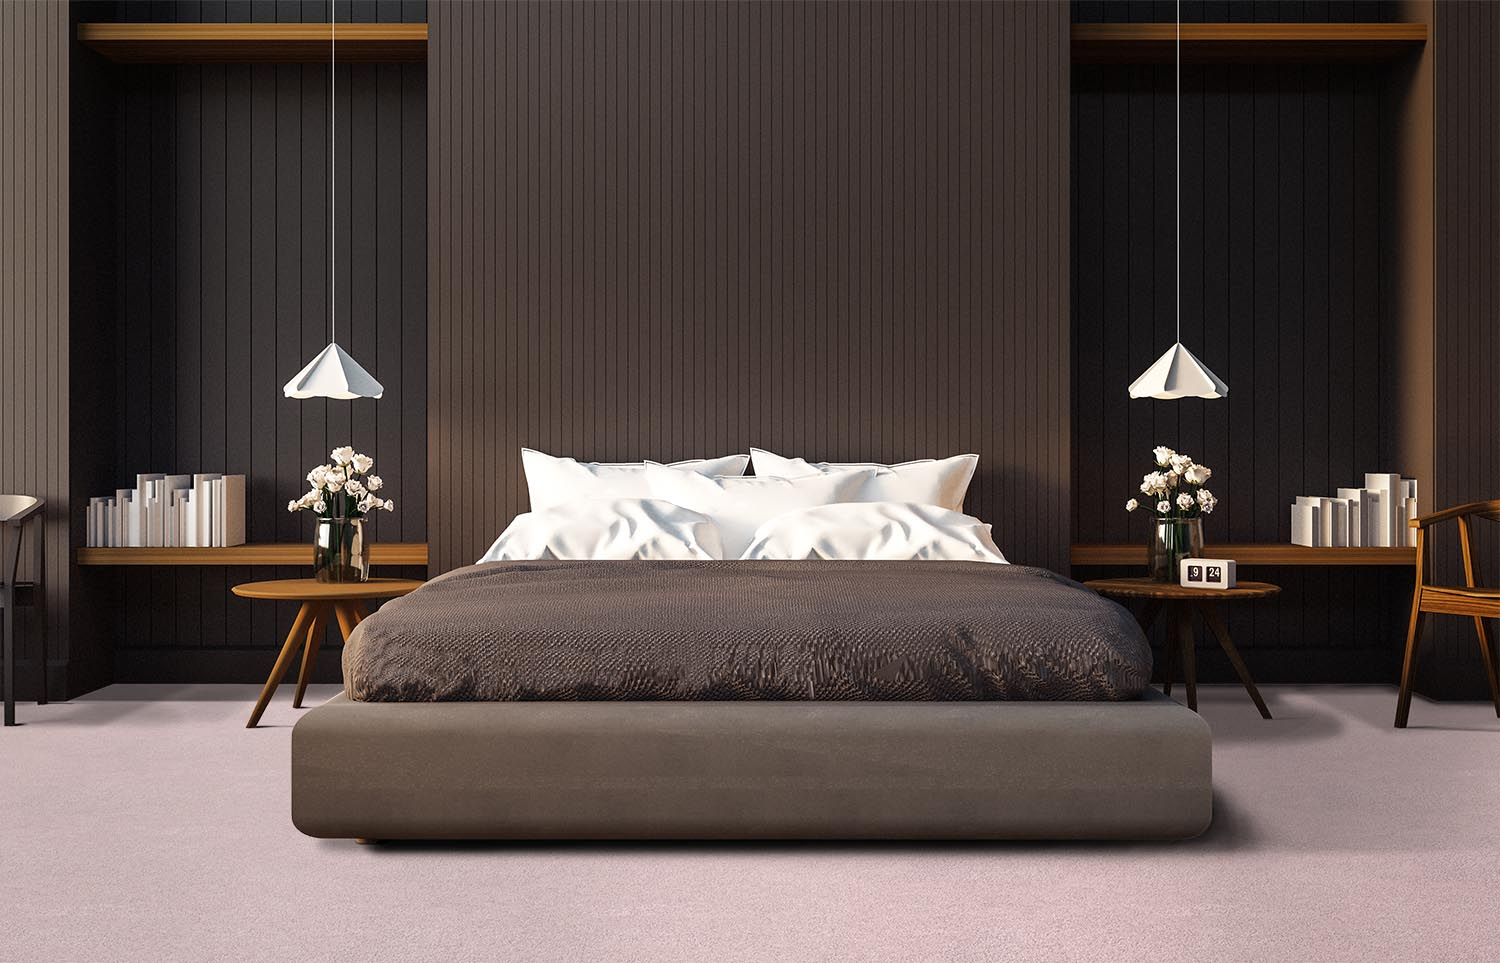 Softology - S301 - Dahlia contemporary bedroom